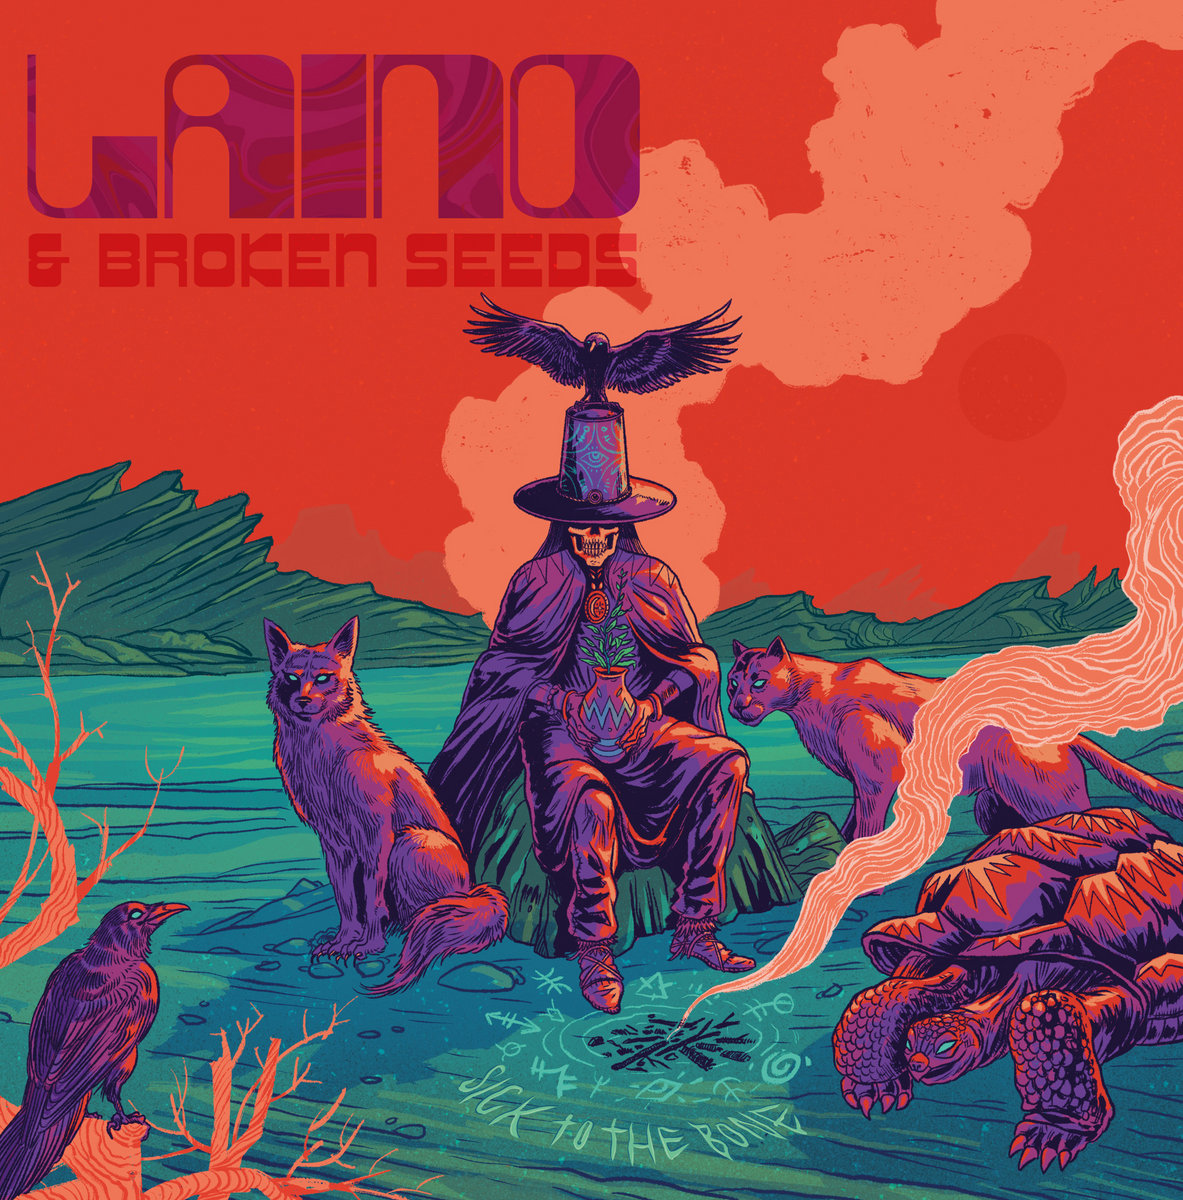 Laino & The Broken Seeds - Sick To The Bone (Off Label Records/Brokensilence, 28.5.21)